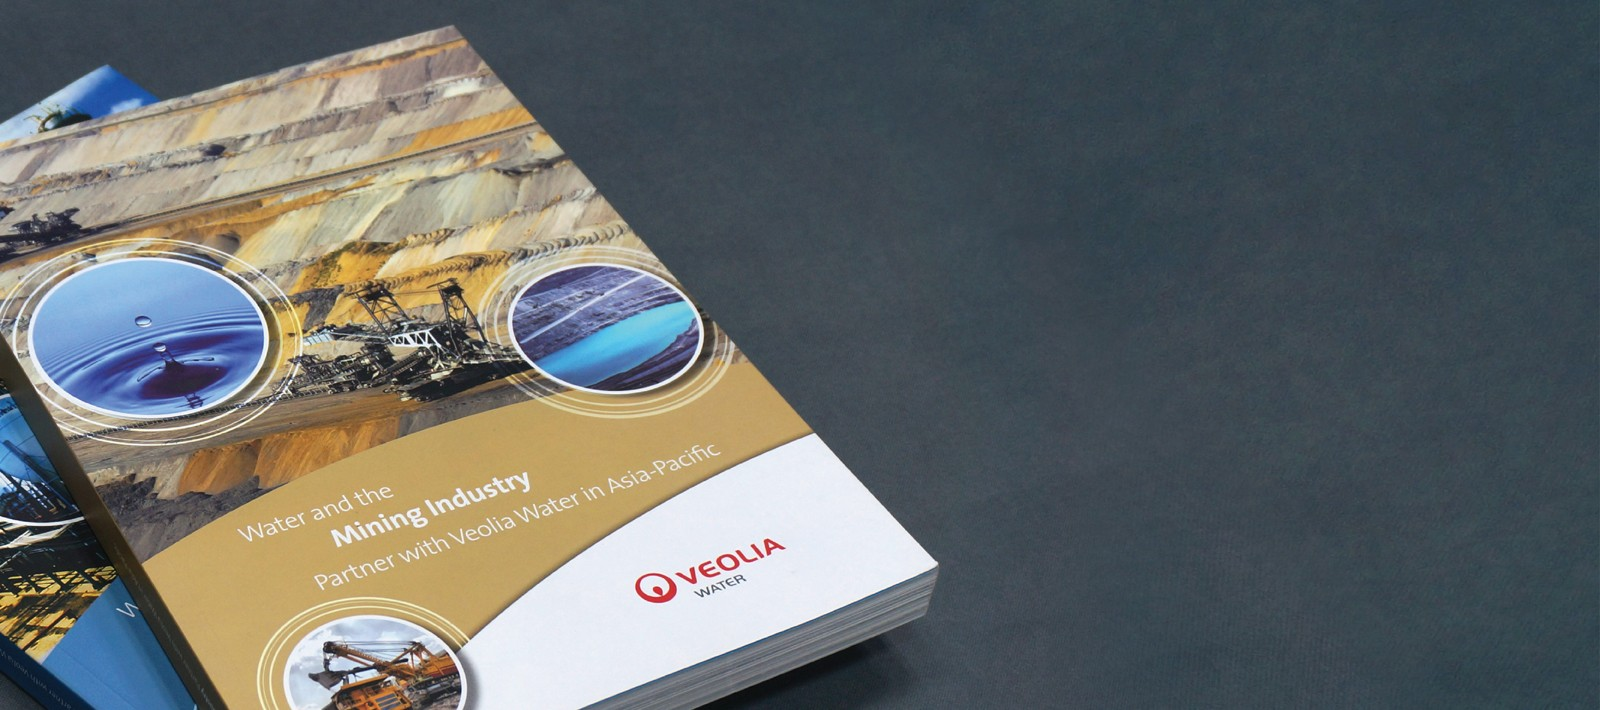 Veolia-professional-marketing-communication-collateral-2